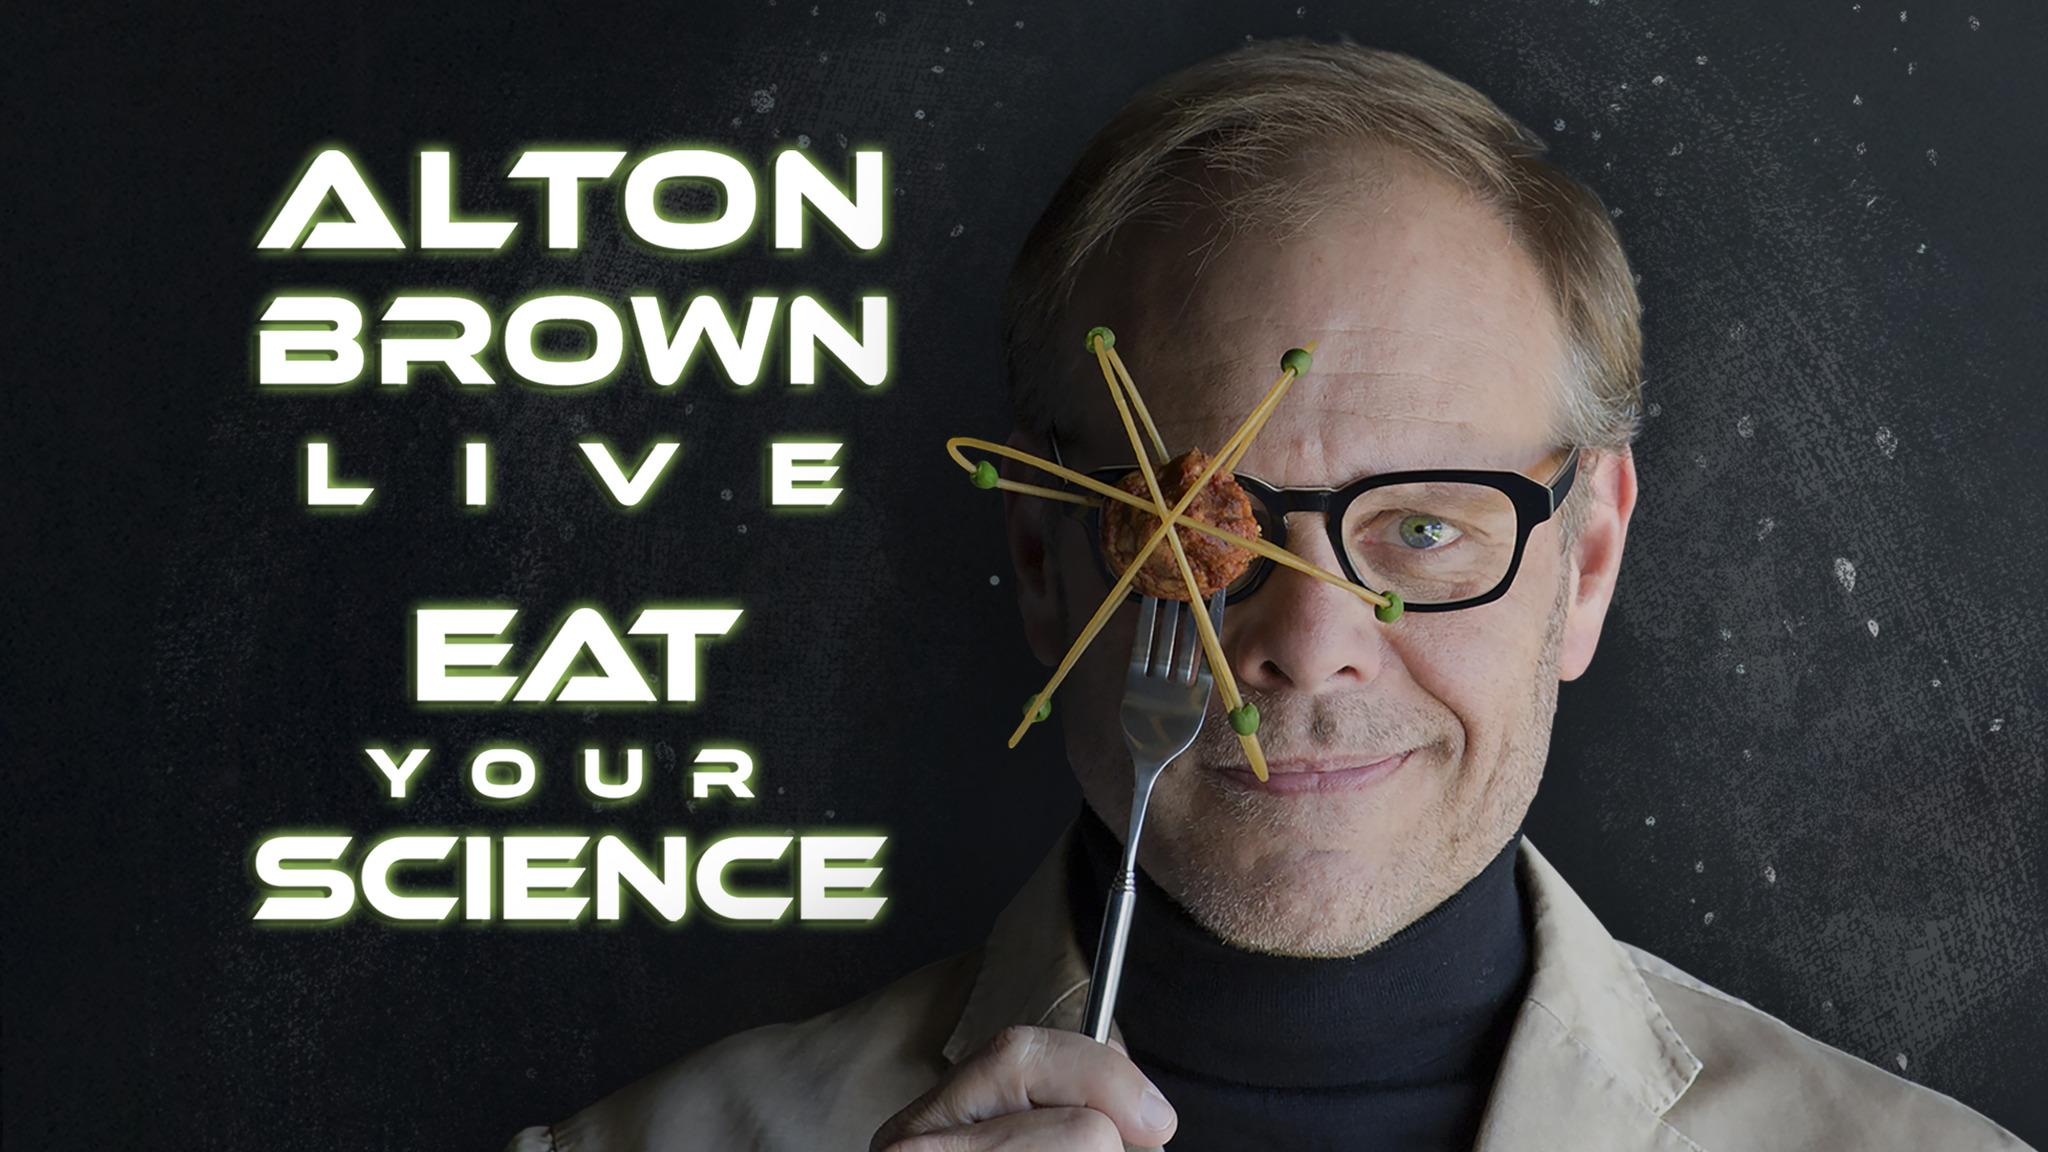 Alton Brown at Morrison Center for the Performing Arts